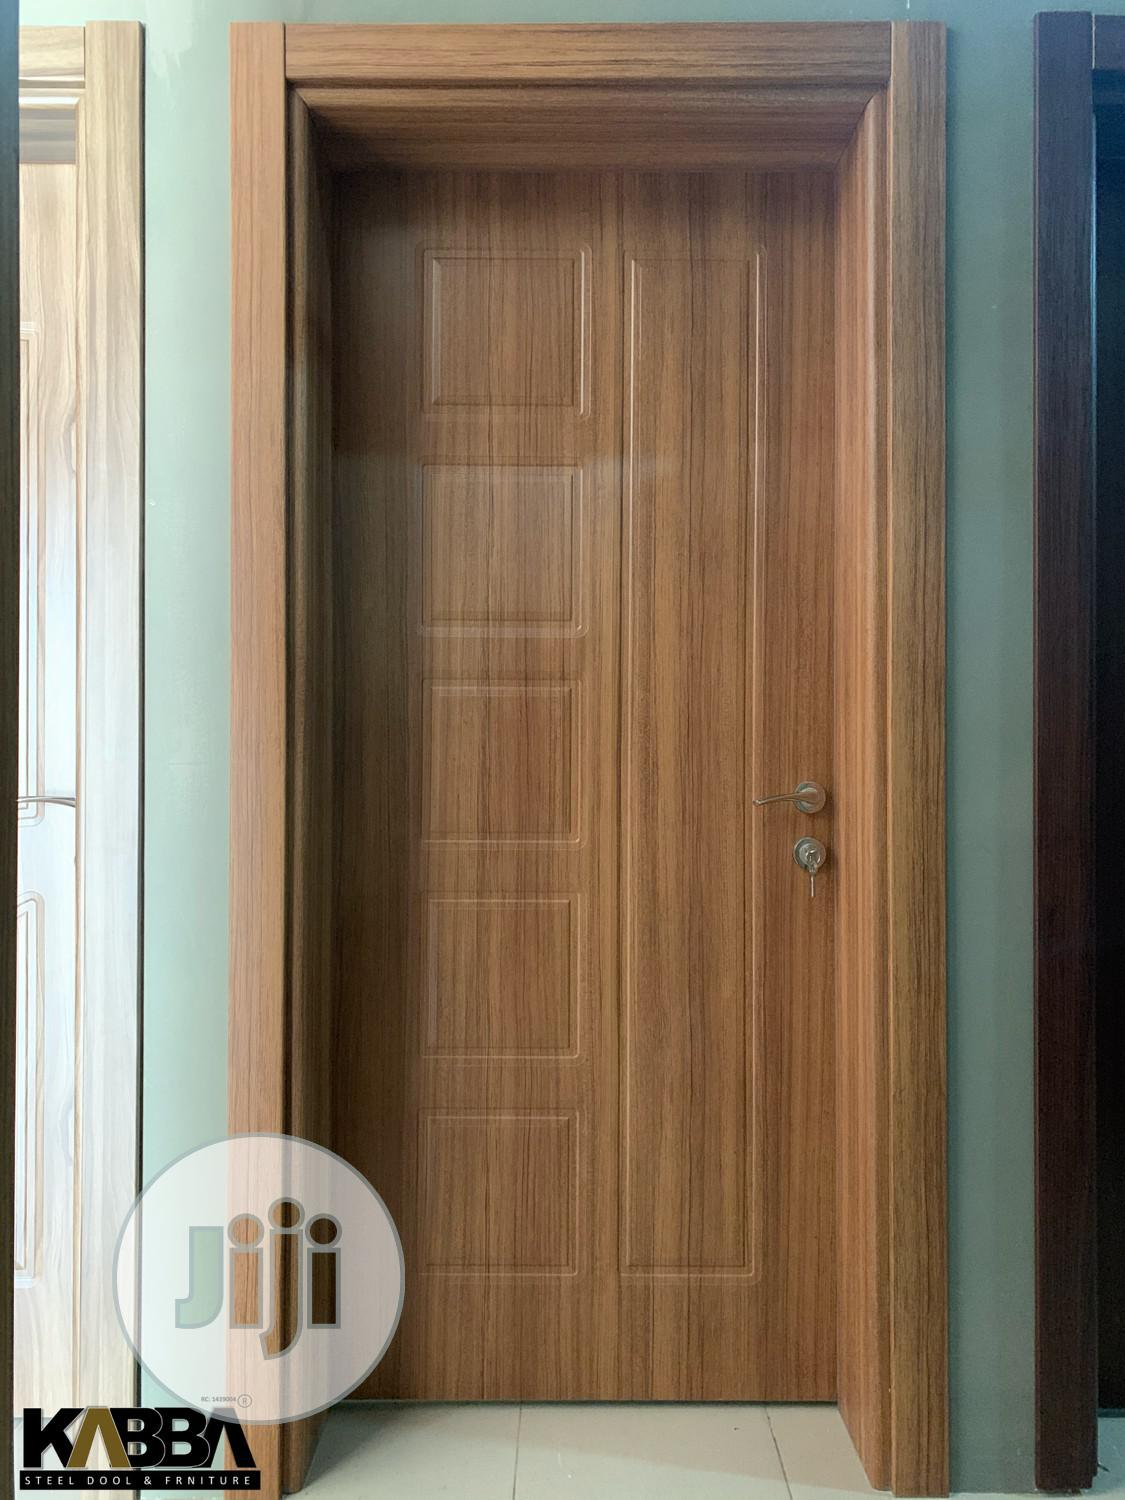 Turkish Interior Doors With Water Proof And Anti-insect | Doors for sale in Kubwa, Abuja (FCT) State, Nigeria